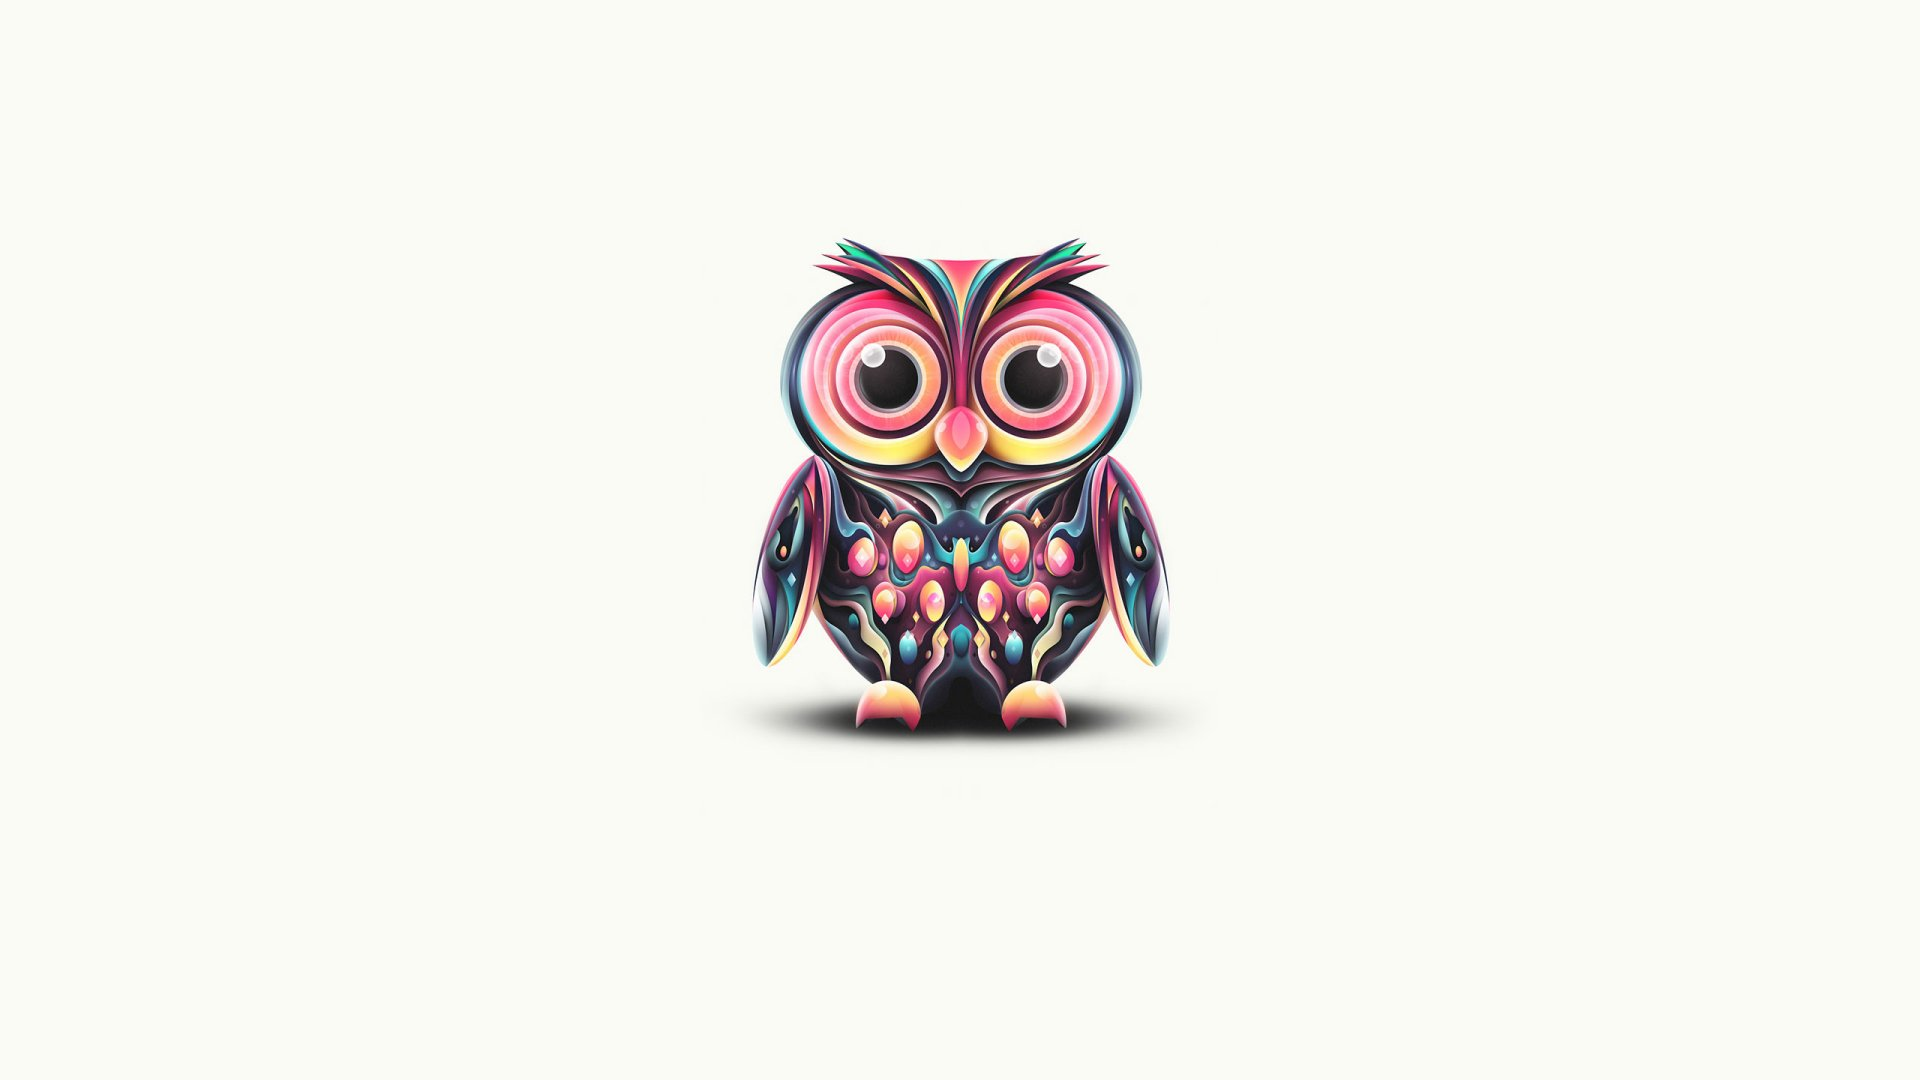 Artistic - Psychedelic  Minimalist Colors Paint Owl Wallpaper